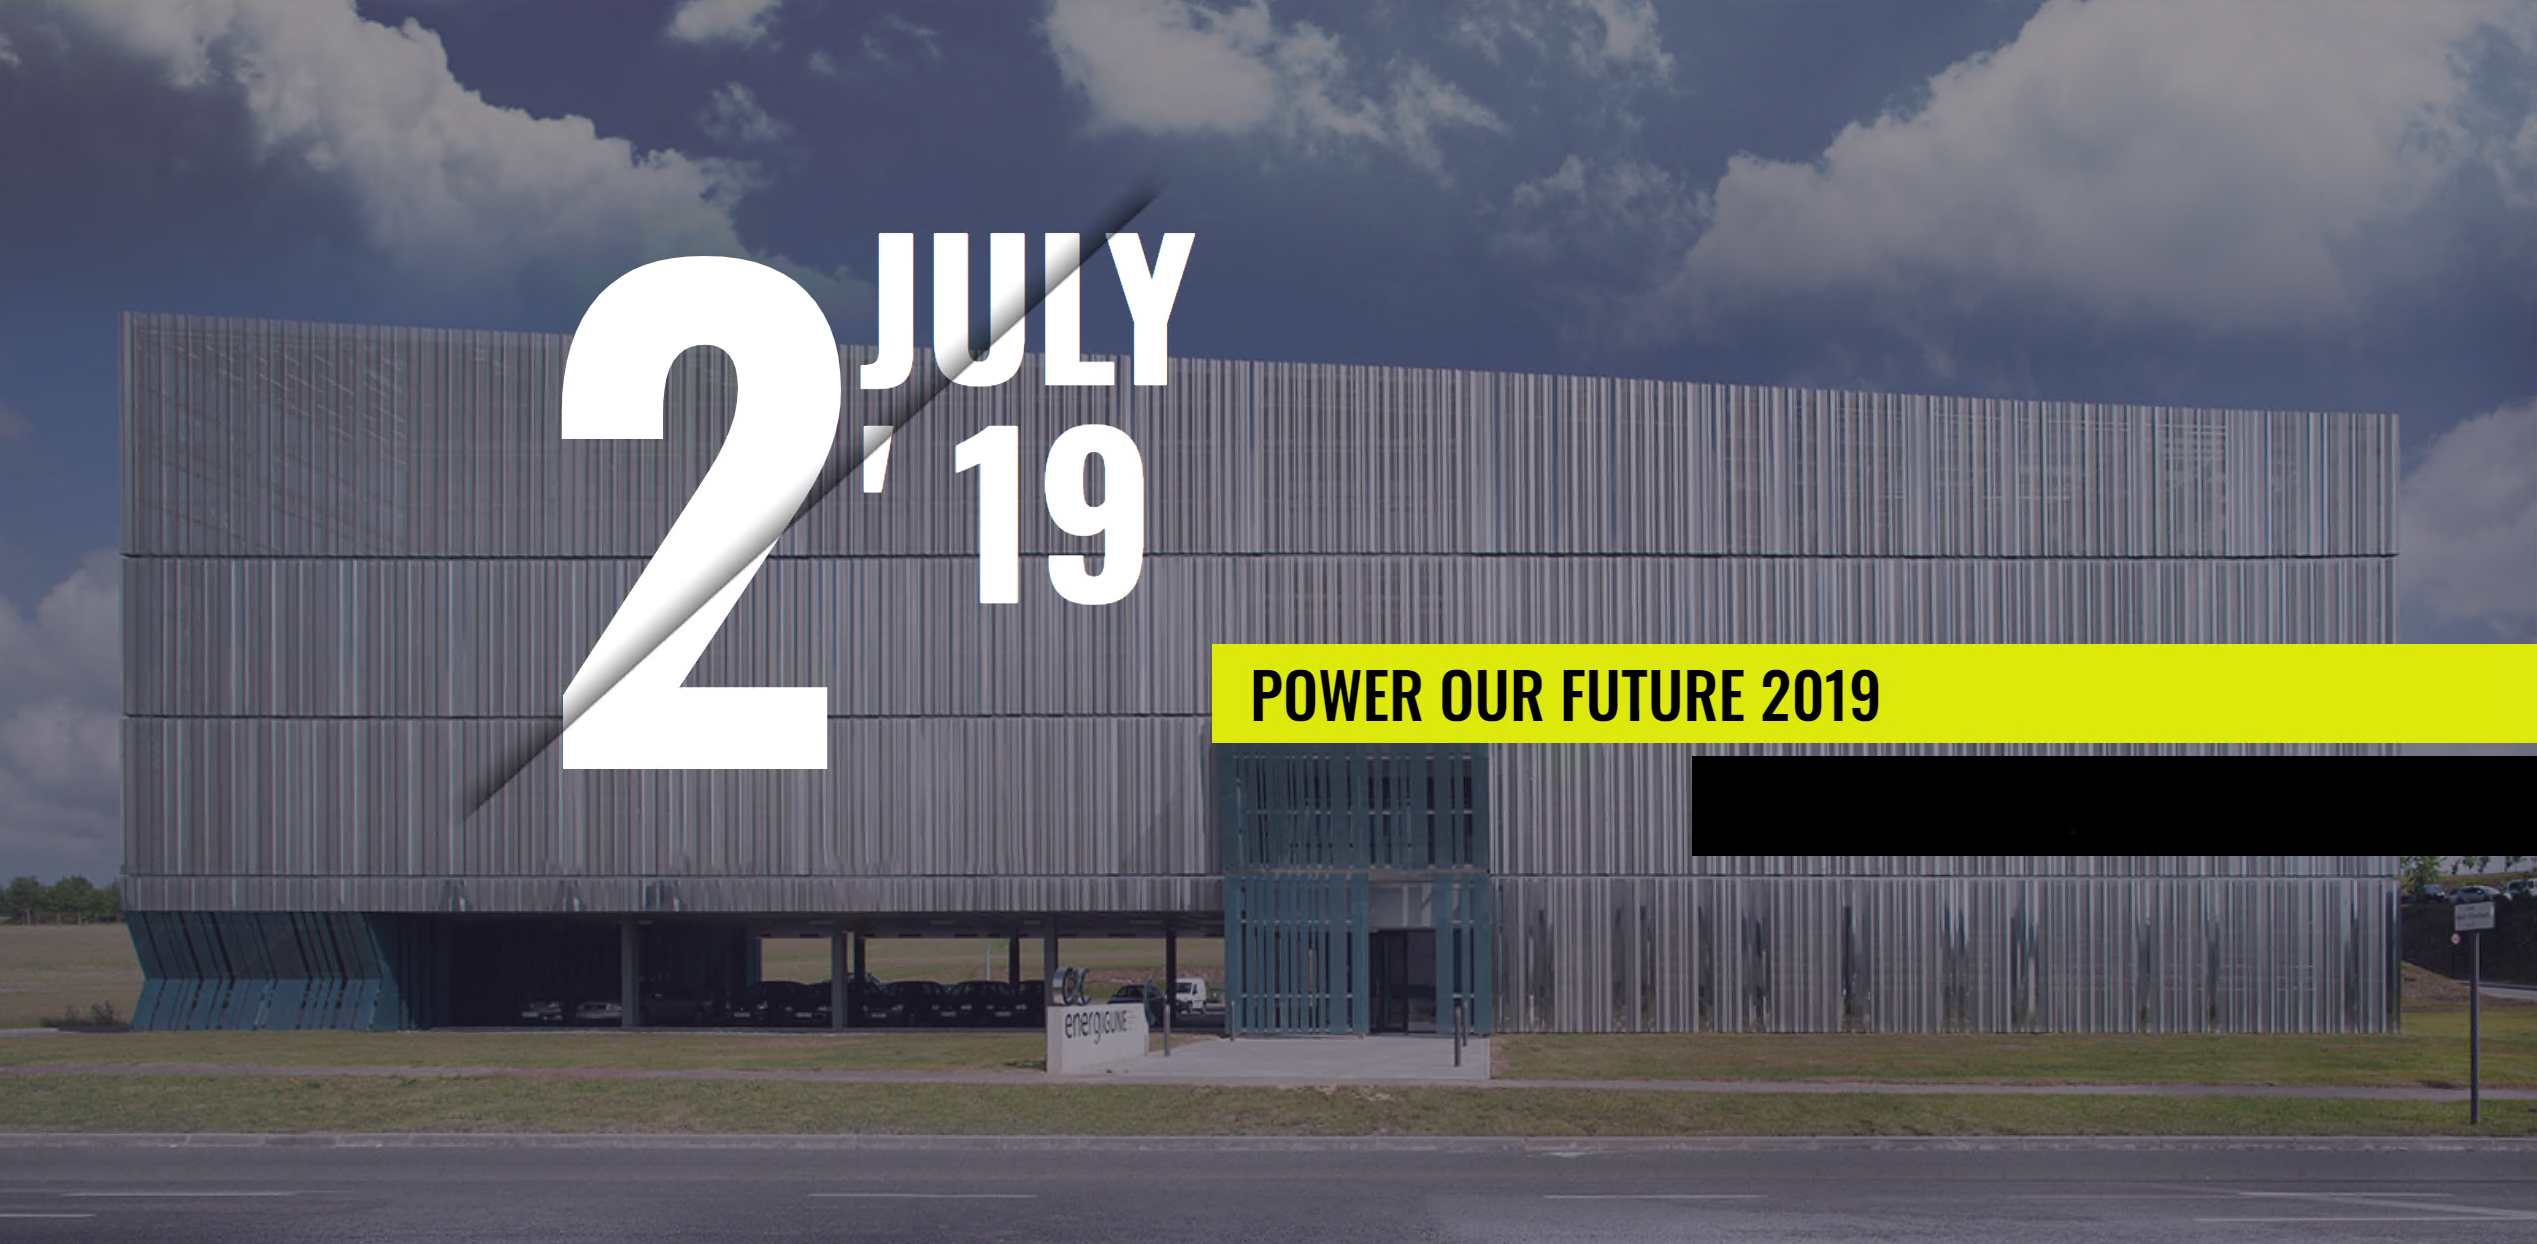 Power Our Future 2019